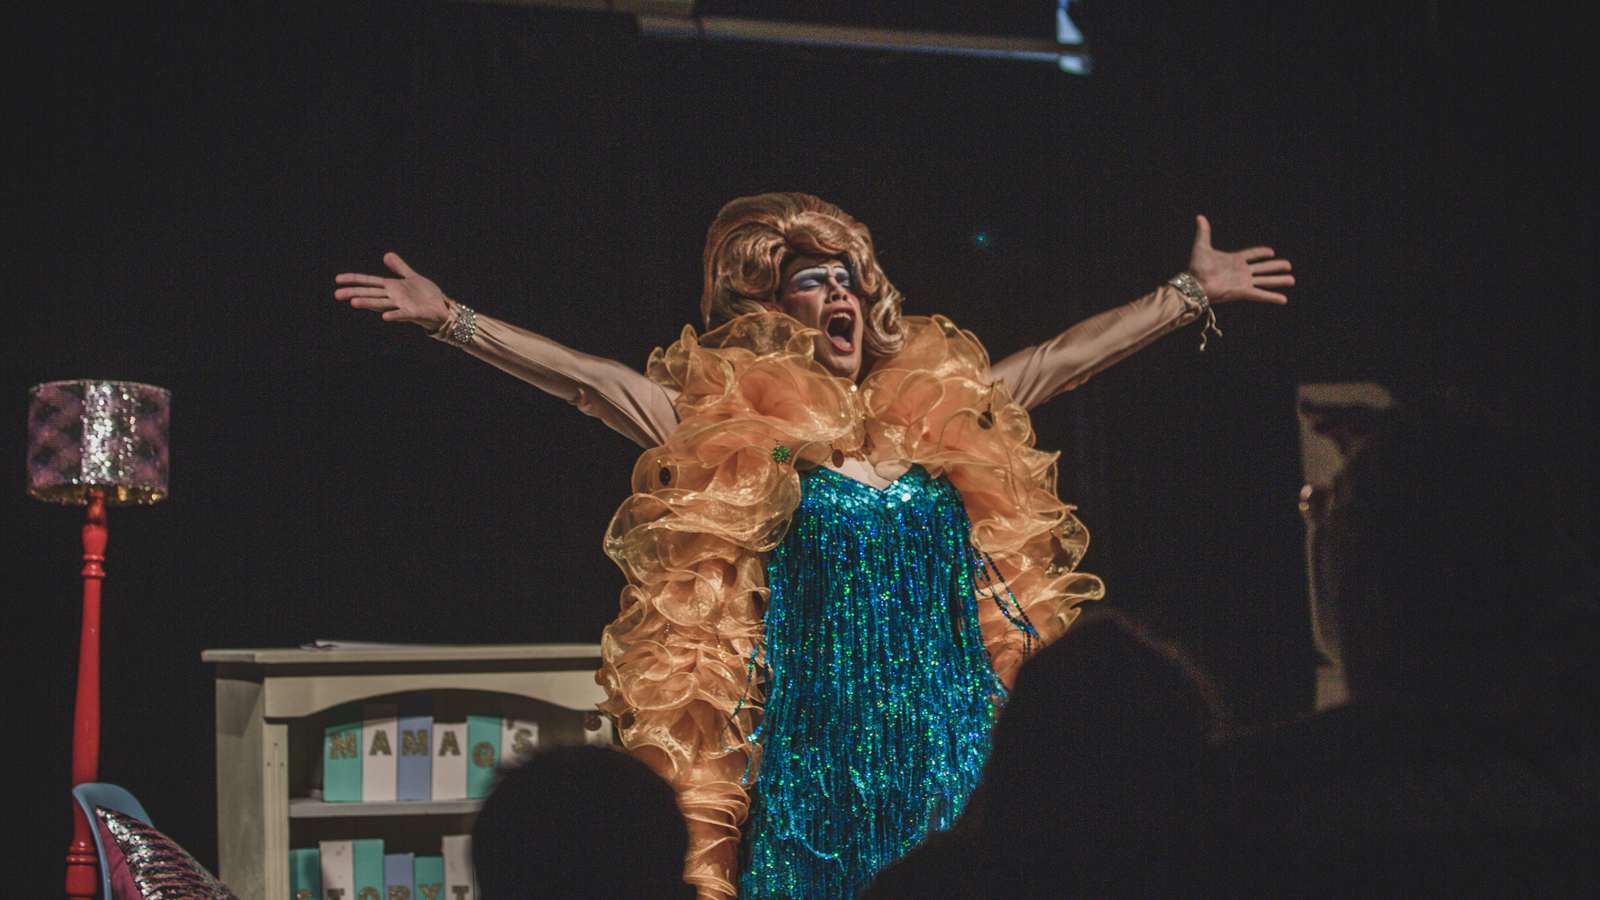 Drag queen Mama G performs in Studio 1 in a blue sequinned dress and orange feather boa